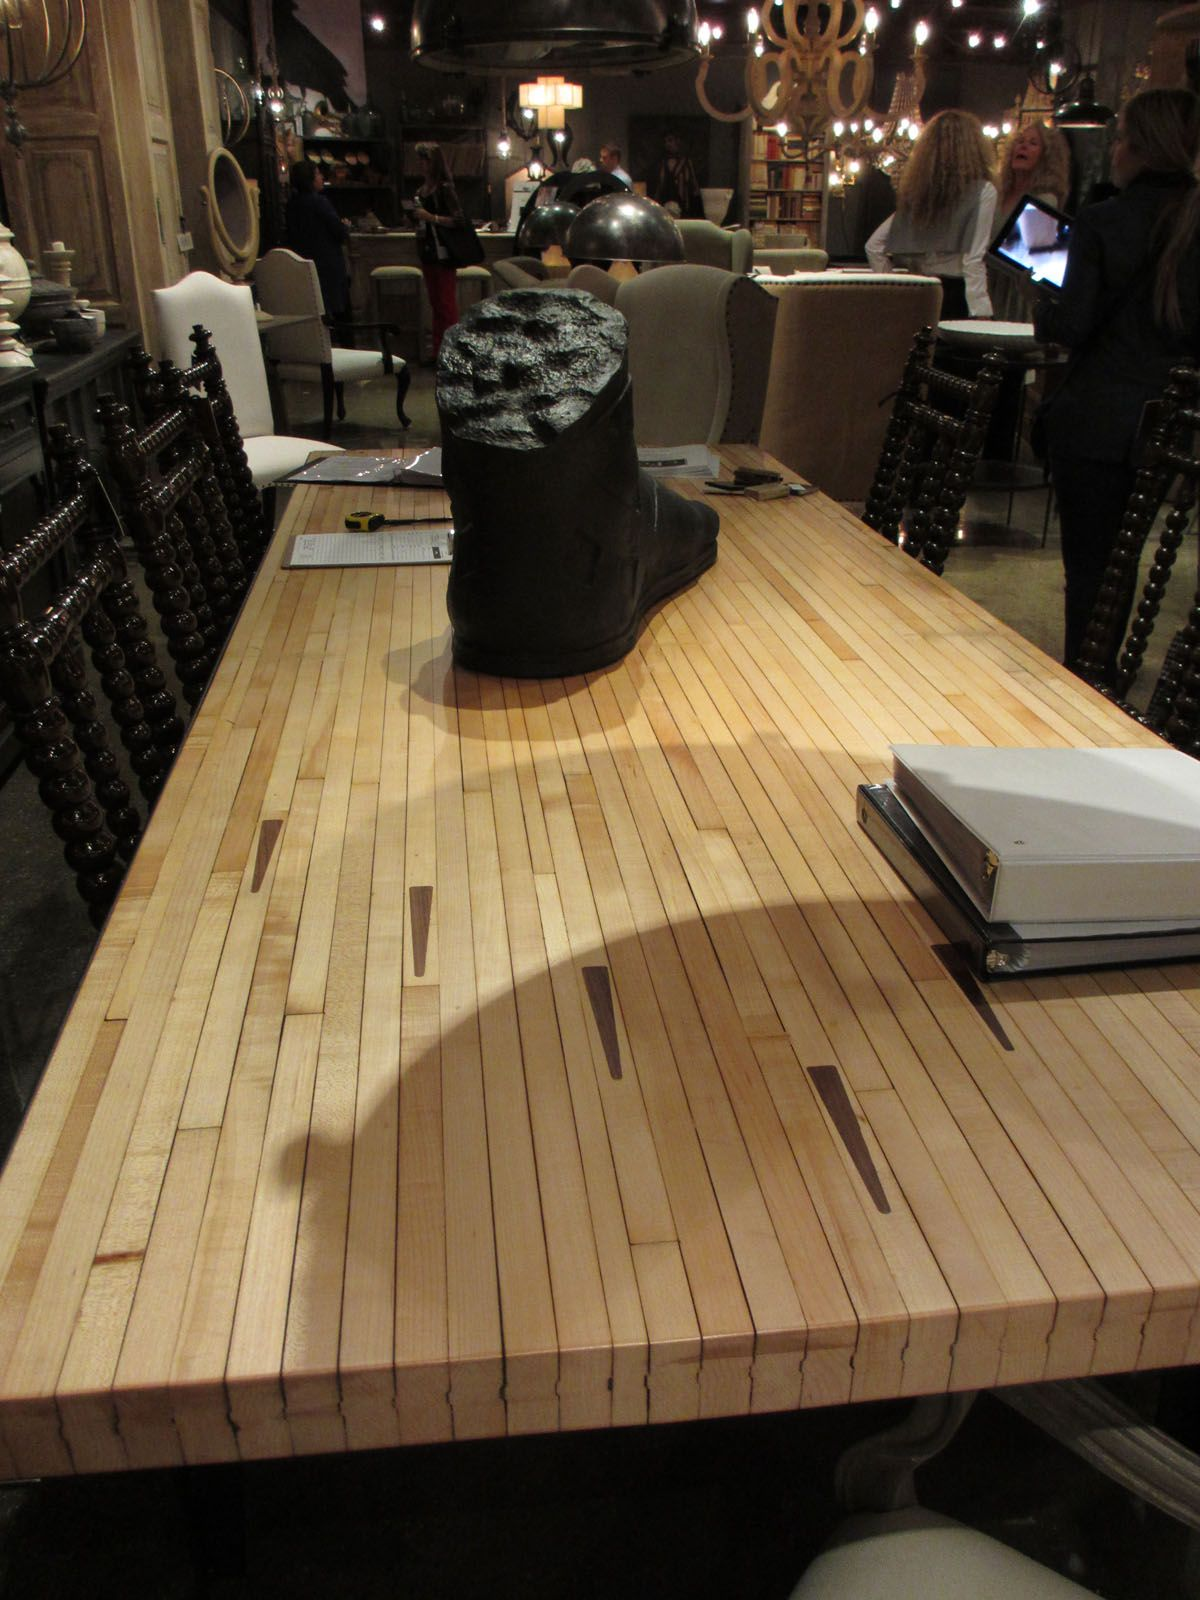 Bowling Alley Floor Table Top Noir Hpmkt Bowling Alley Table